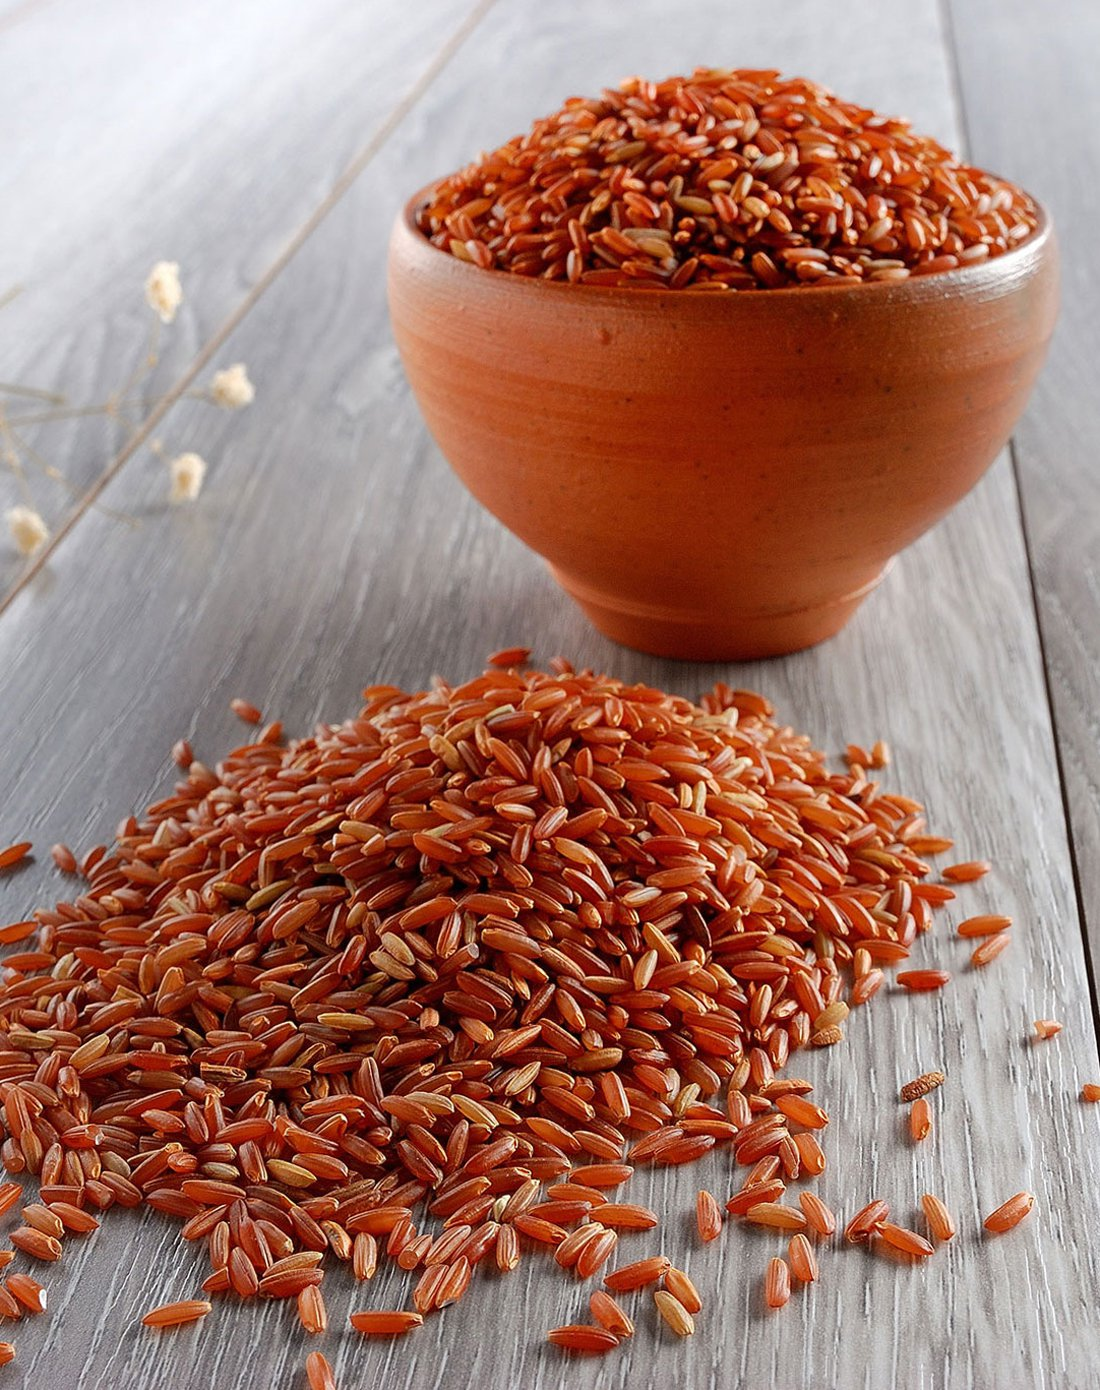 What are the benefits of red rice